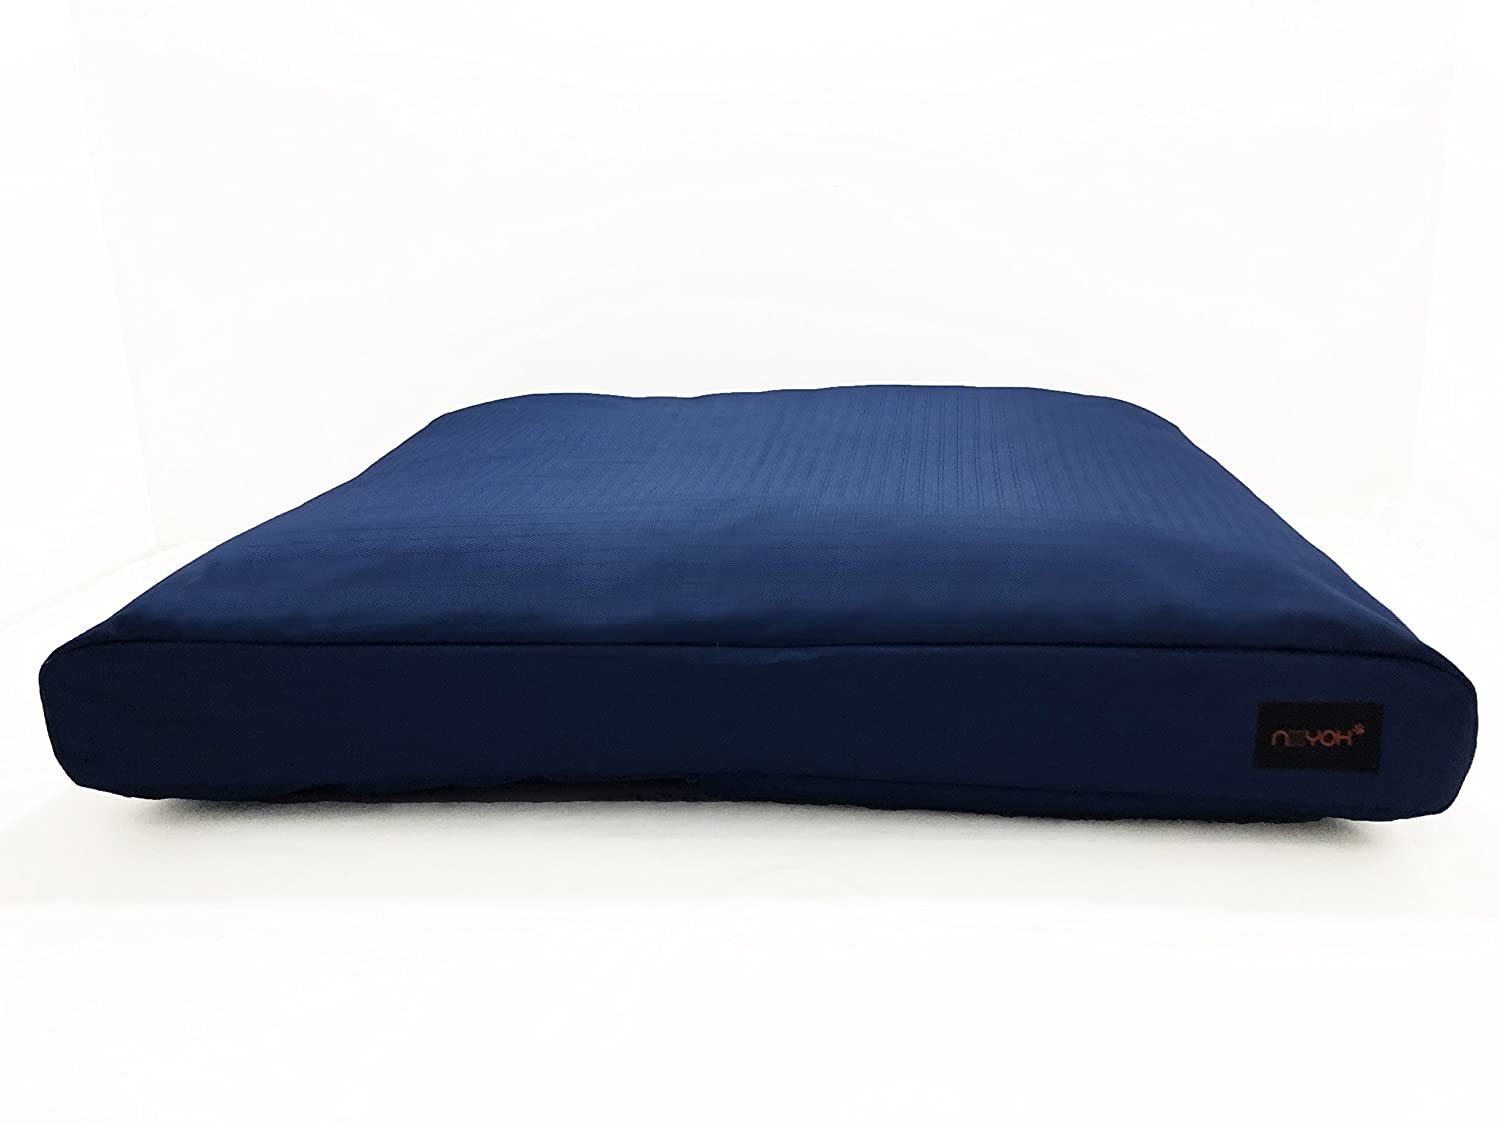 bluee Large 34\ bluee Large 34\ Niiyoh Mighty Dog Bed (Orthopedic) with Super Durable 1800D Ripstop Fabric (Great for Outdoors )